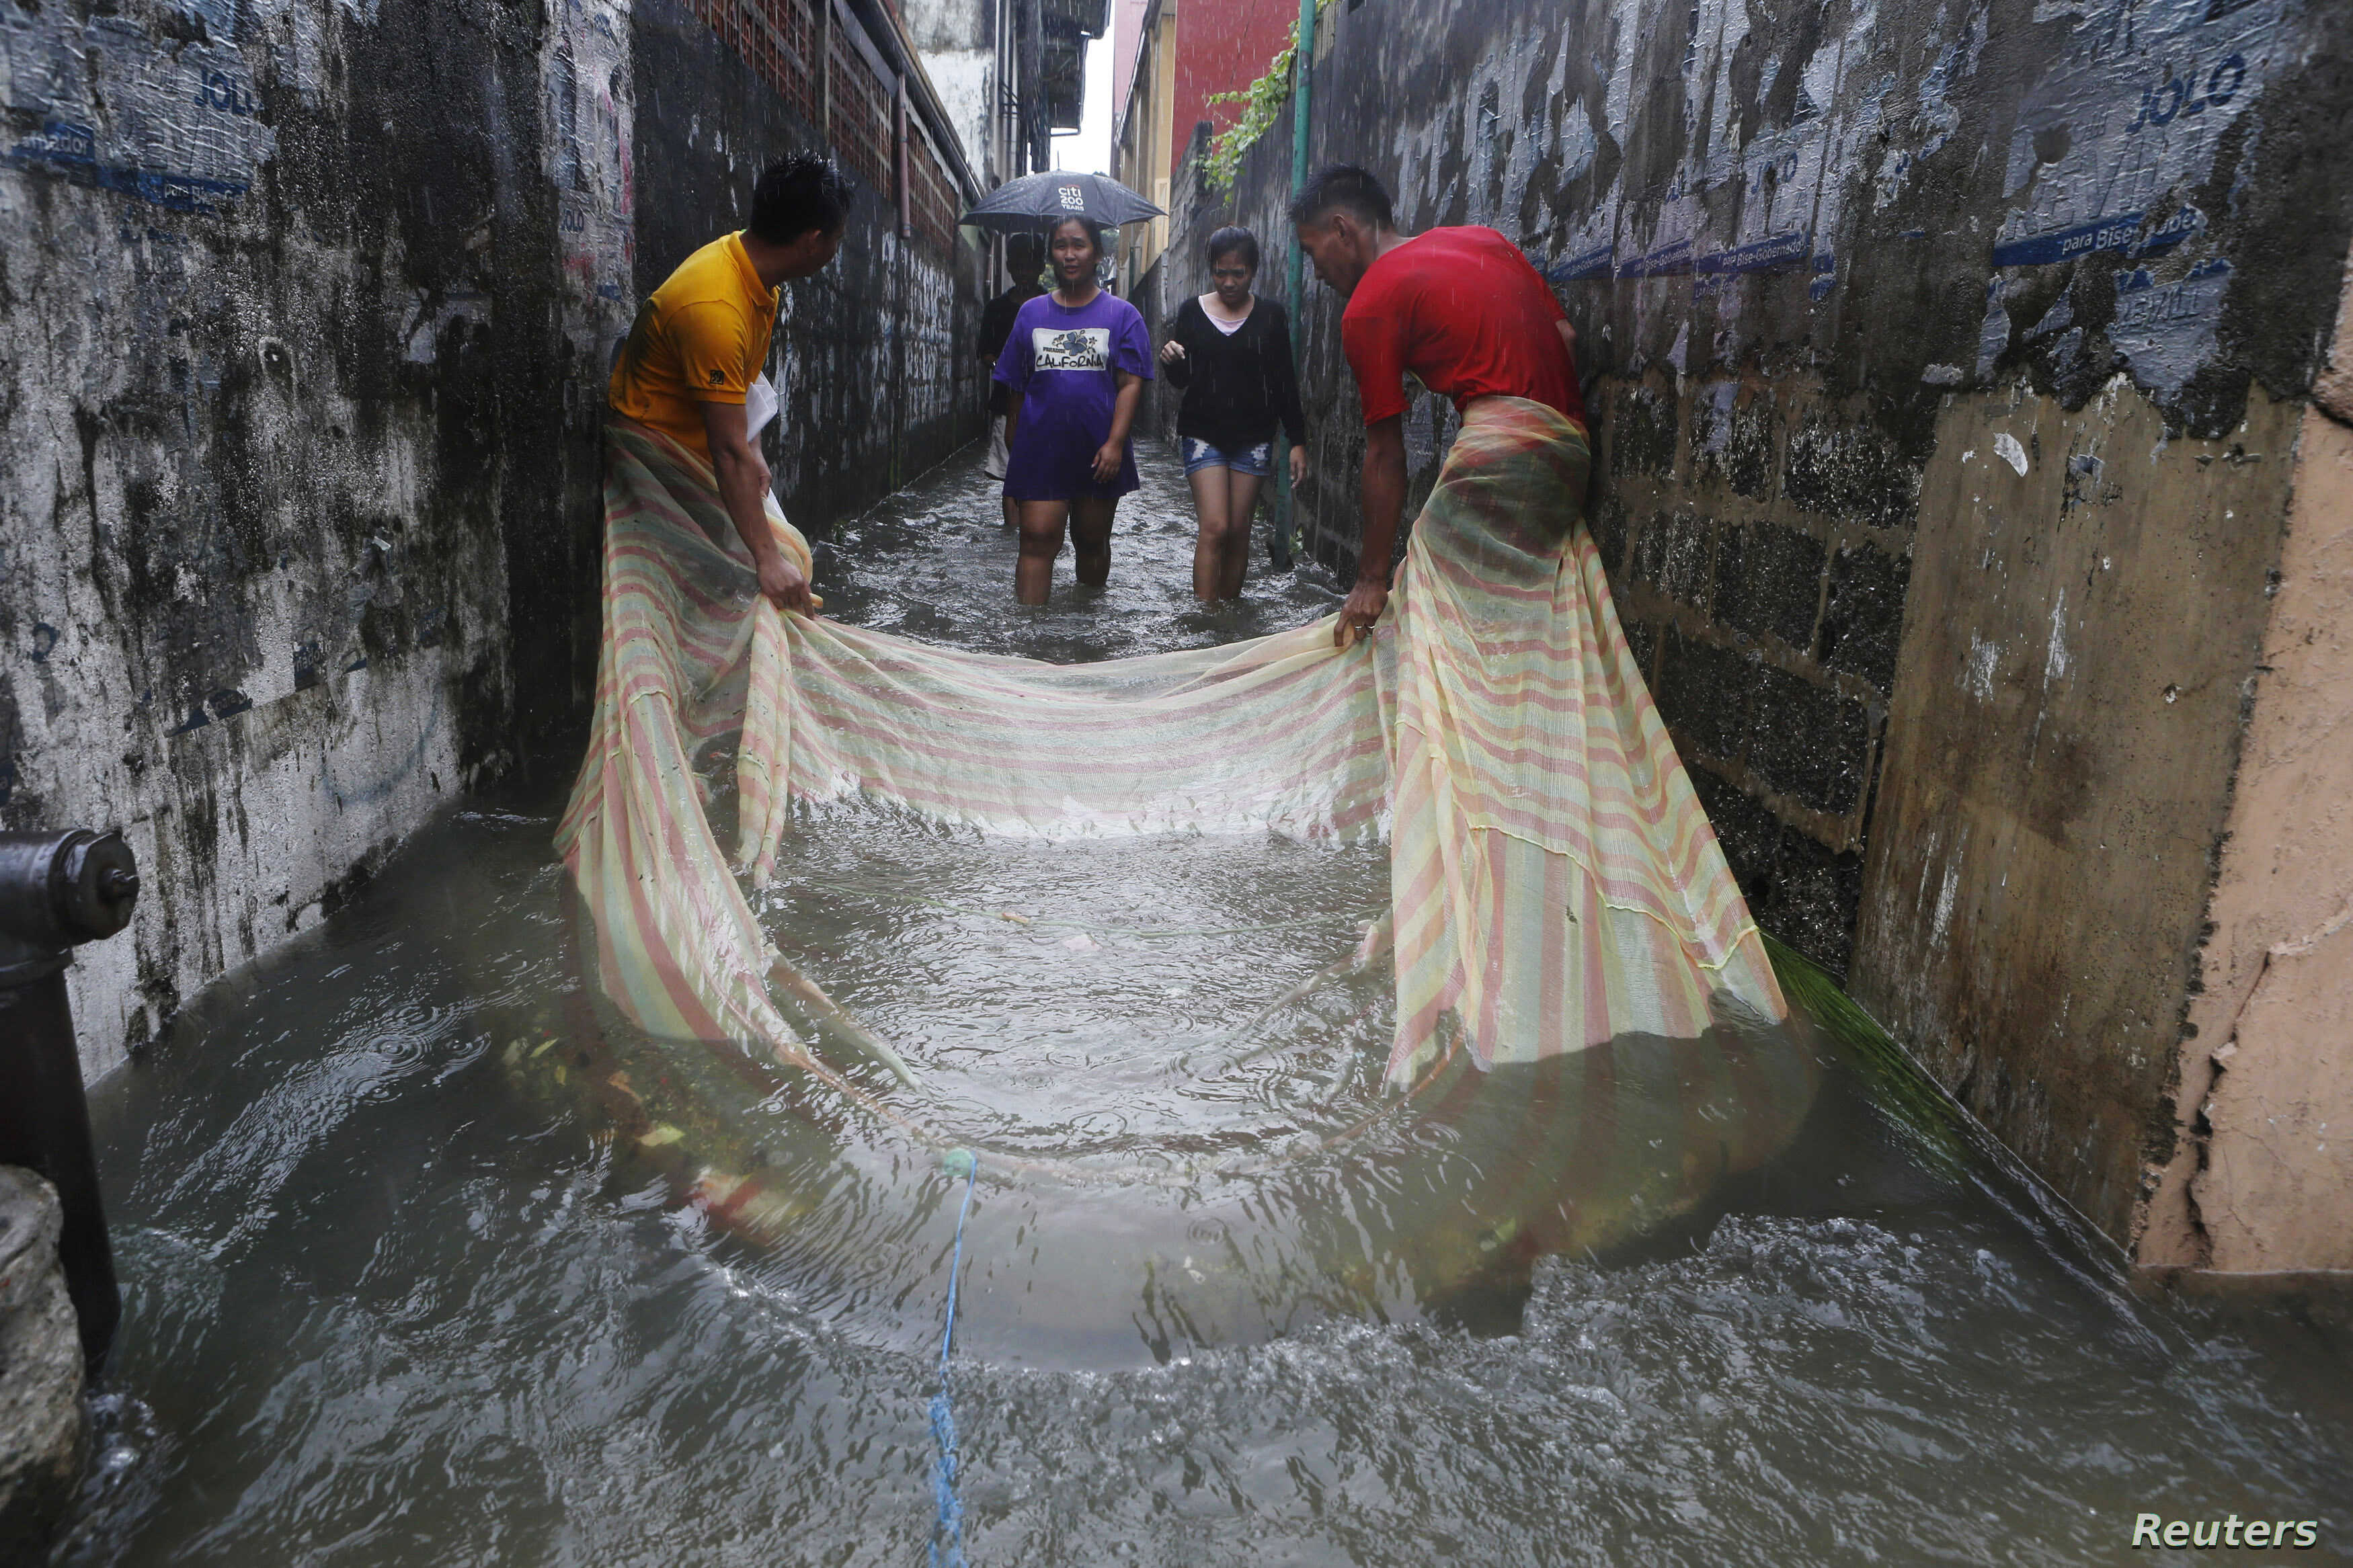 FILE - Men use a mosquito net to catch fish in a flooded alley in a residential district in Bacoor, near Manila, Phillippines, Aug. 20, 2013.